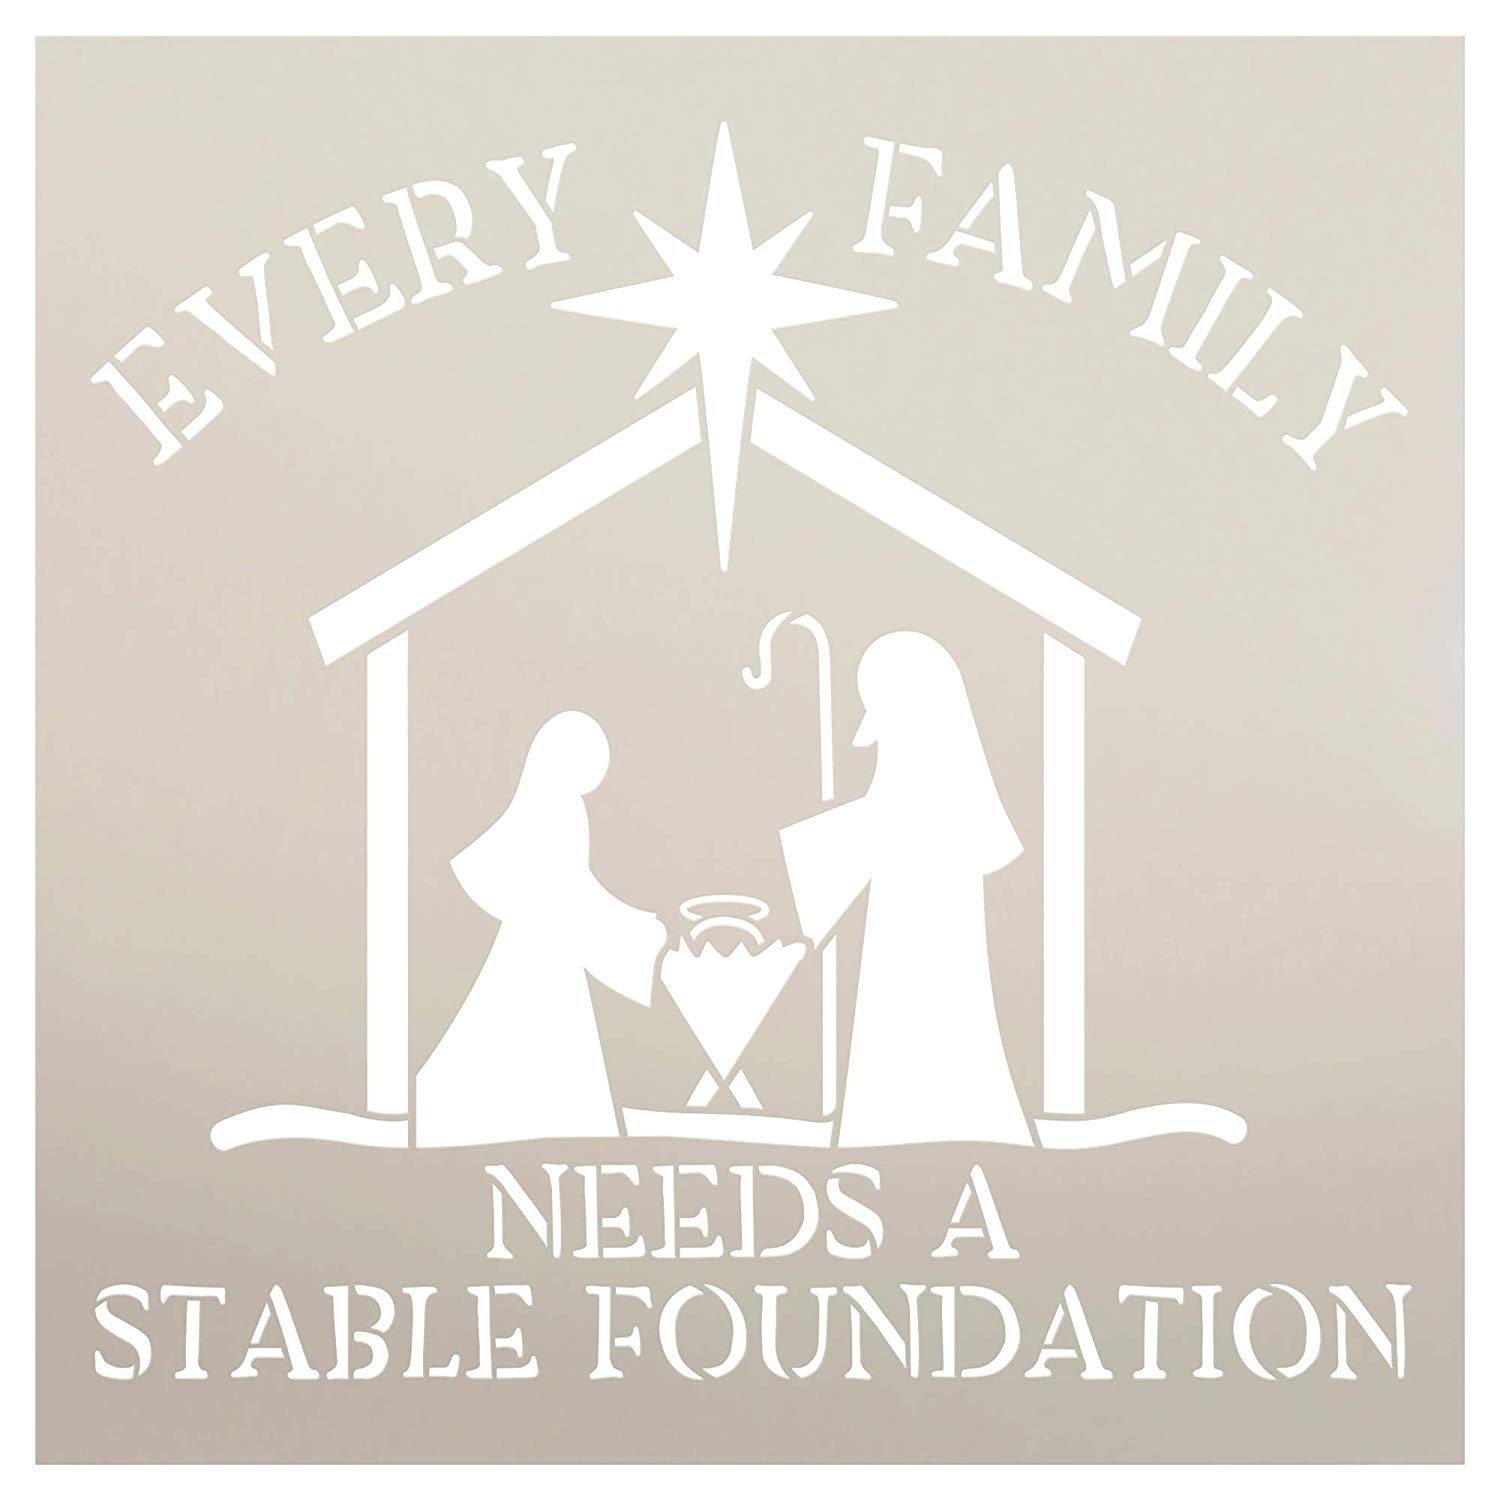 Every Family Needs A Stable Foundation Stencil with Manger StudioR12   Christian Faith Word Art   DIY Christmas Holiday Home Decor   Paint Wood Signs   Reusable Mylar   Select Size